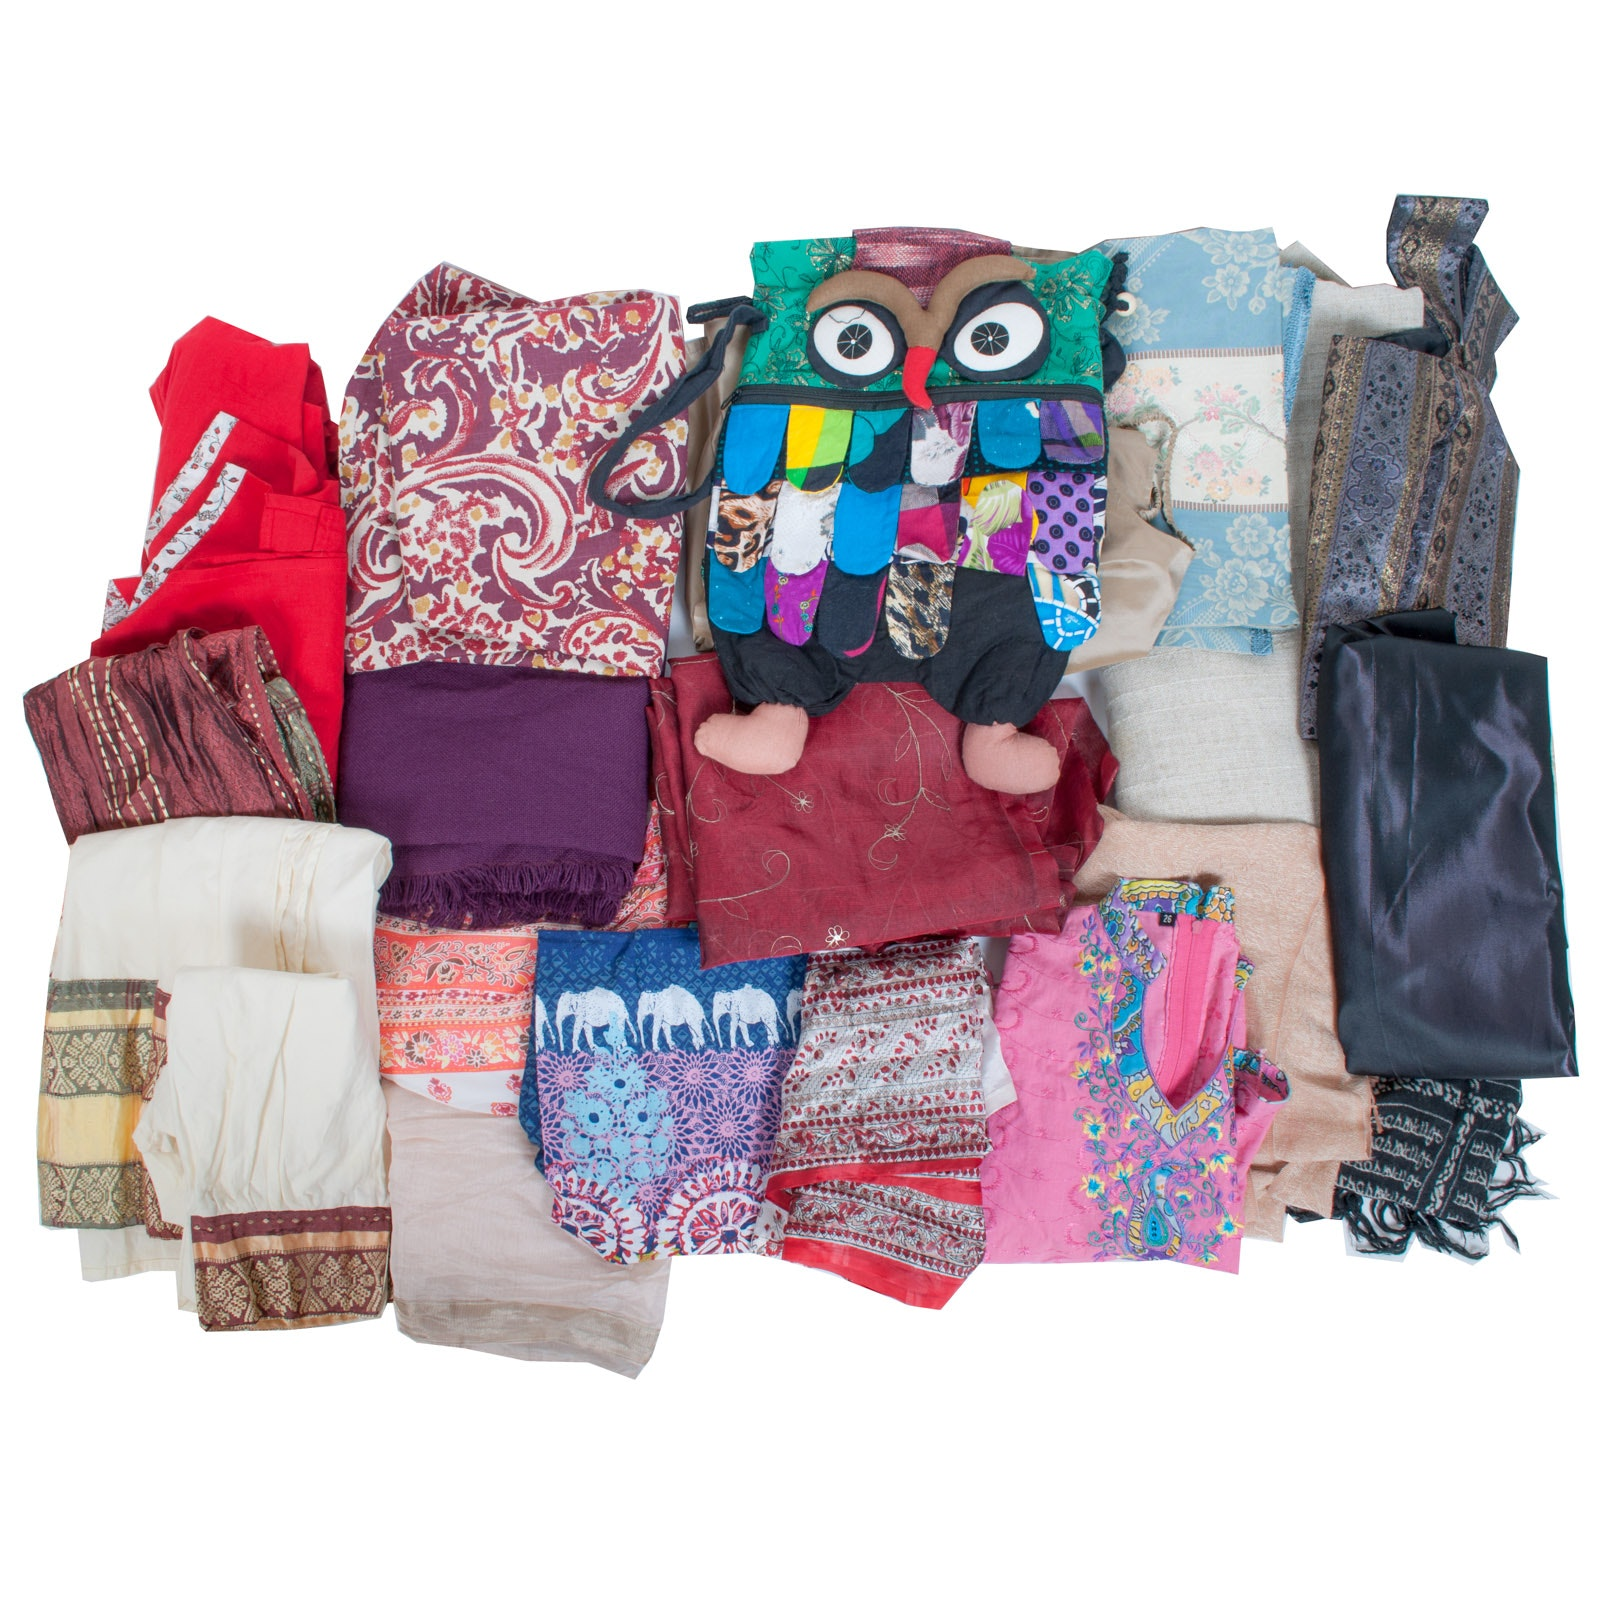 Assortment of World Culturally Themed Clothing and Textiles